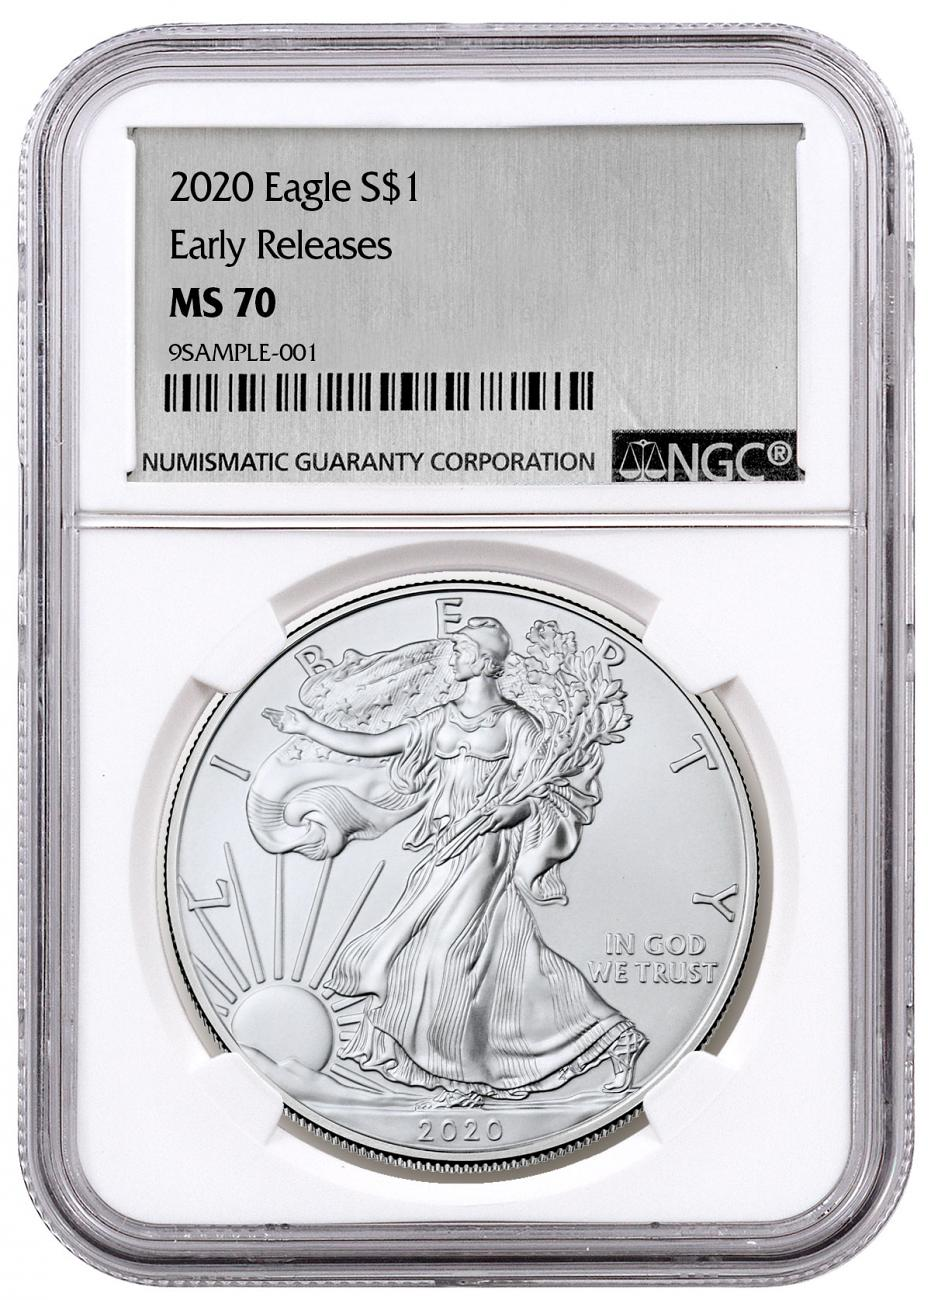 2020 1 oz American Silver Eagle $1 Coin NGC MS70 ER Silver Foil Label